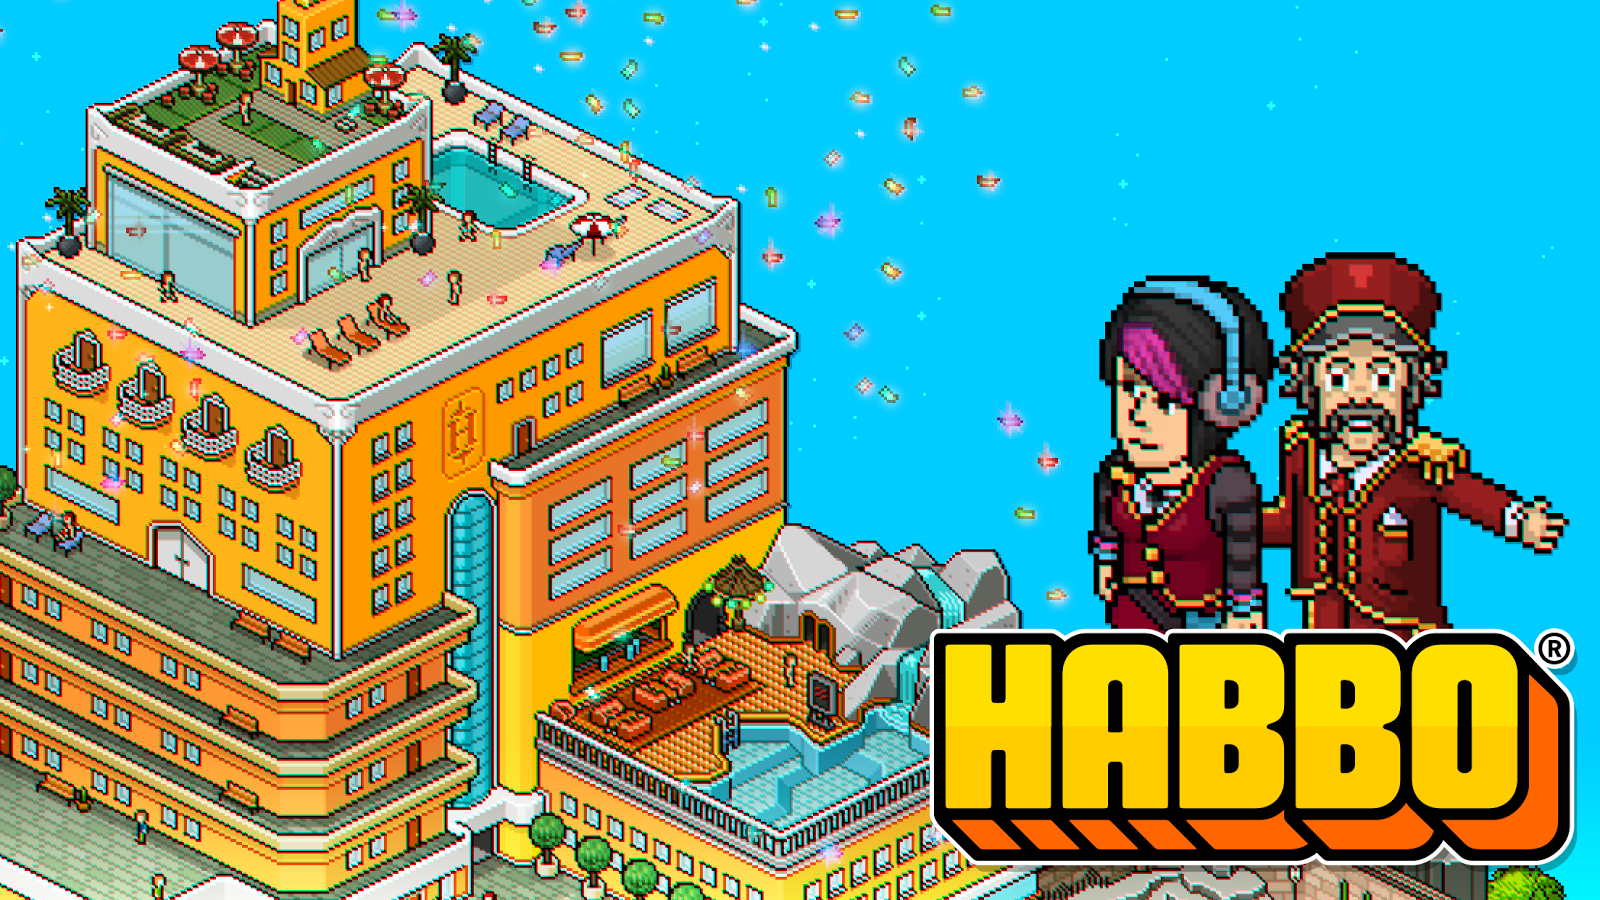 Store Ads Online >> Habbo - Virtual World - Android Apps on Google Play